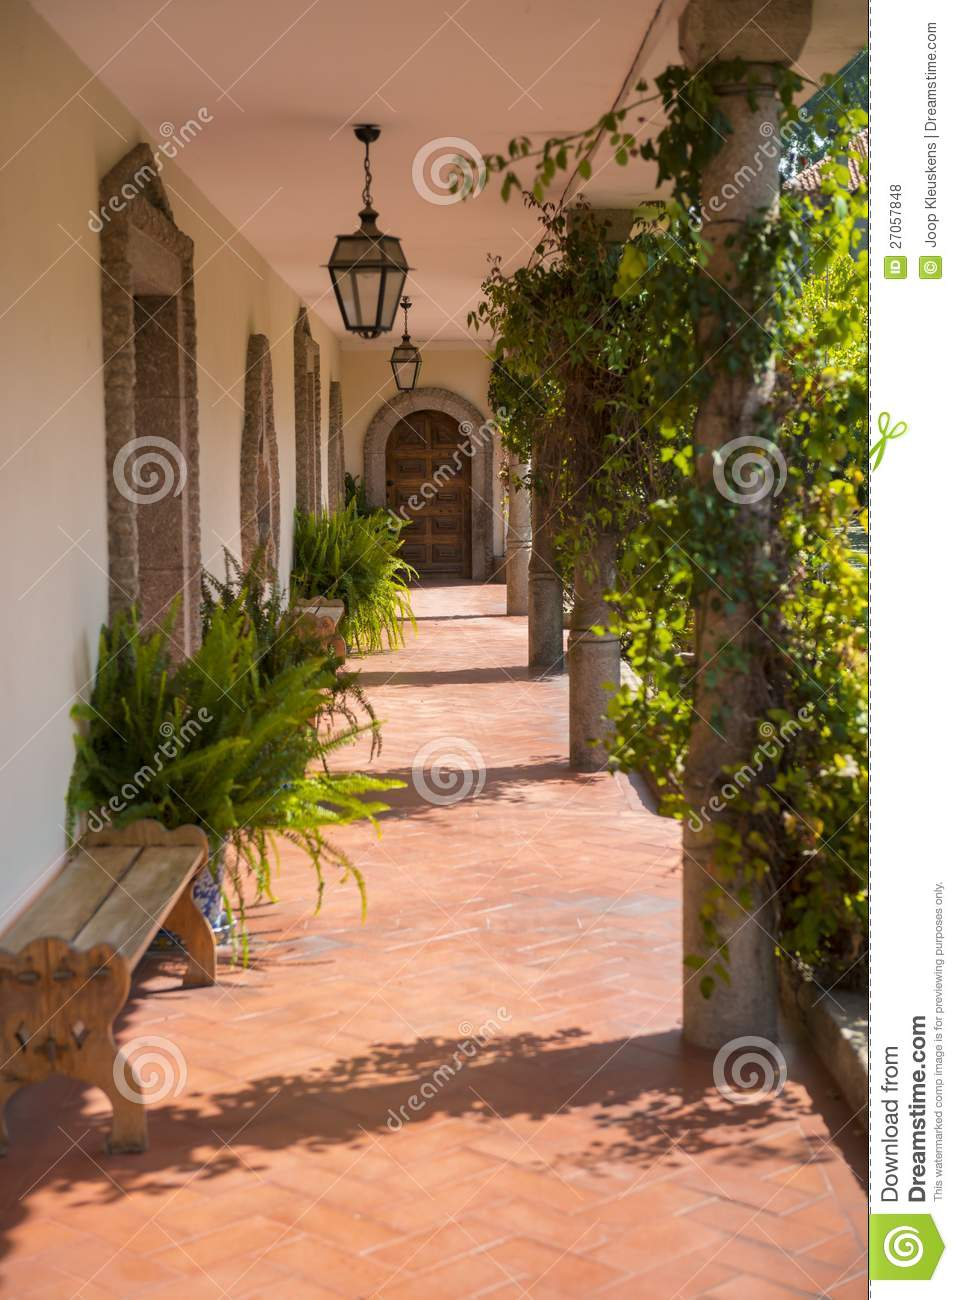 Corridor with decoration royalty free stock photos image 27057848 - Corridor decoratie ...